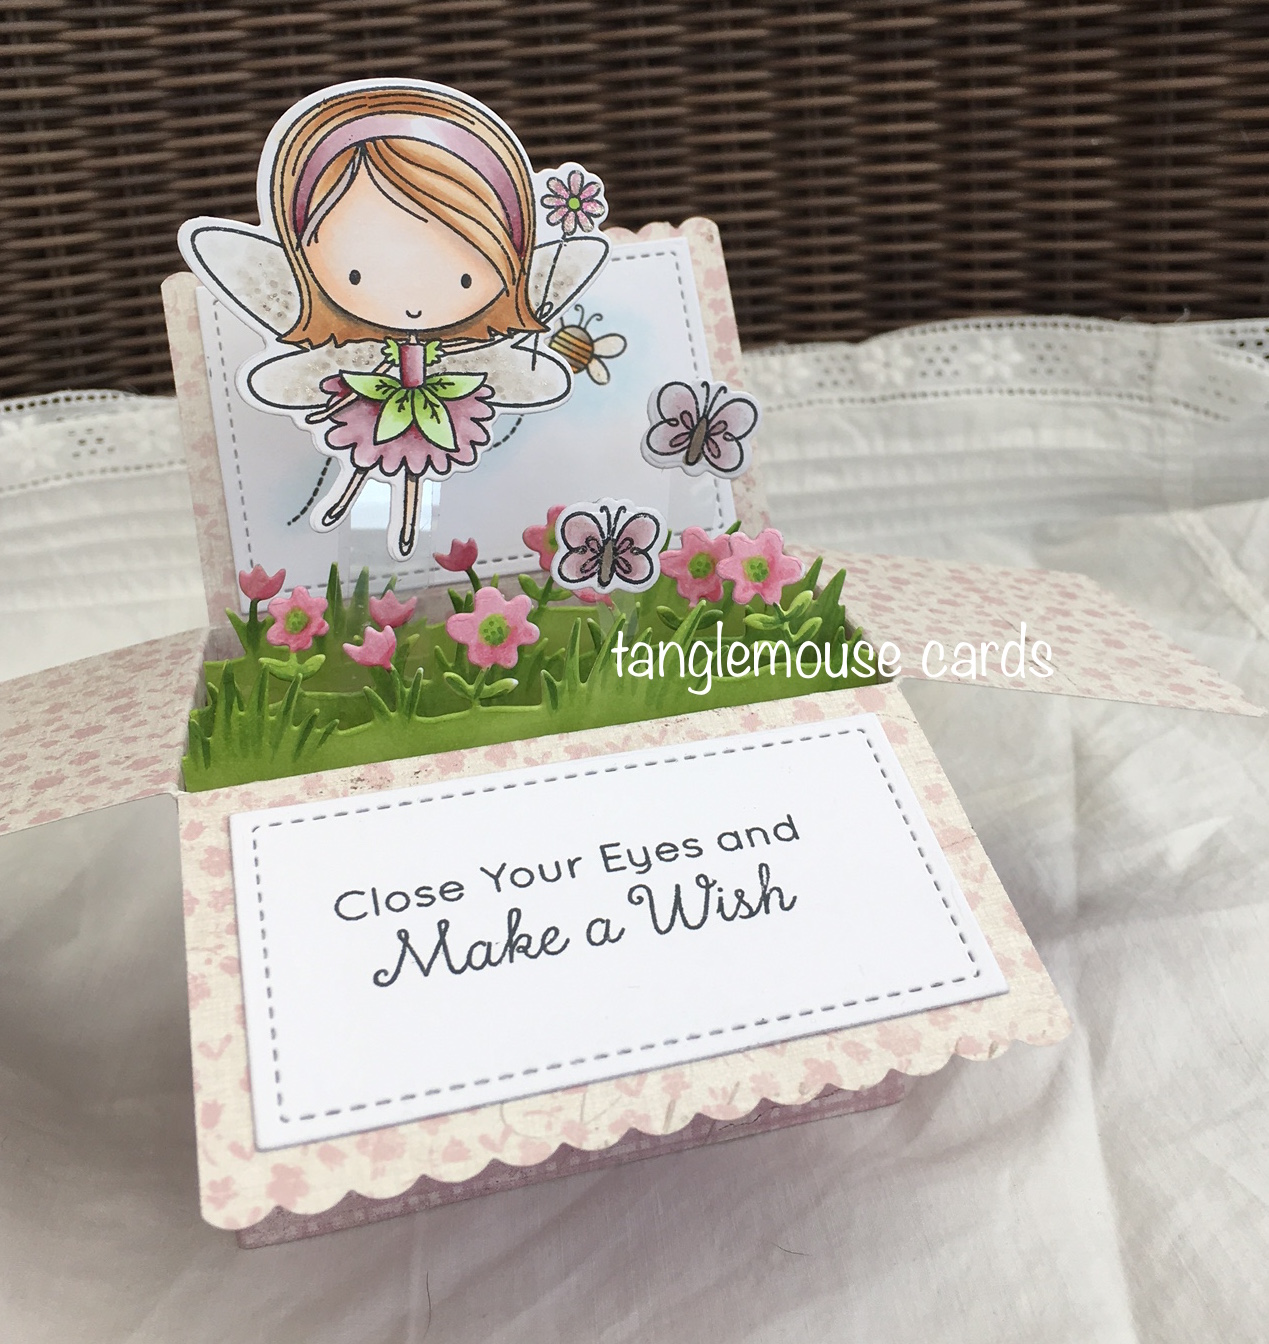 tanglemouse cards: Fairy Happy...